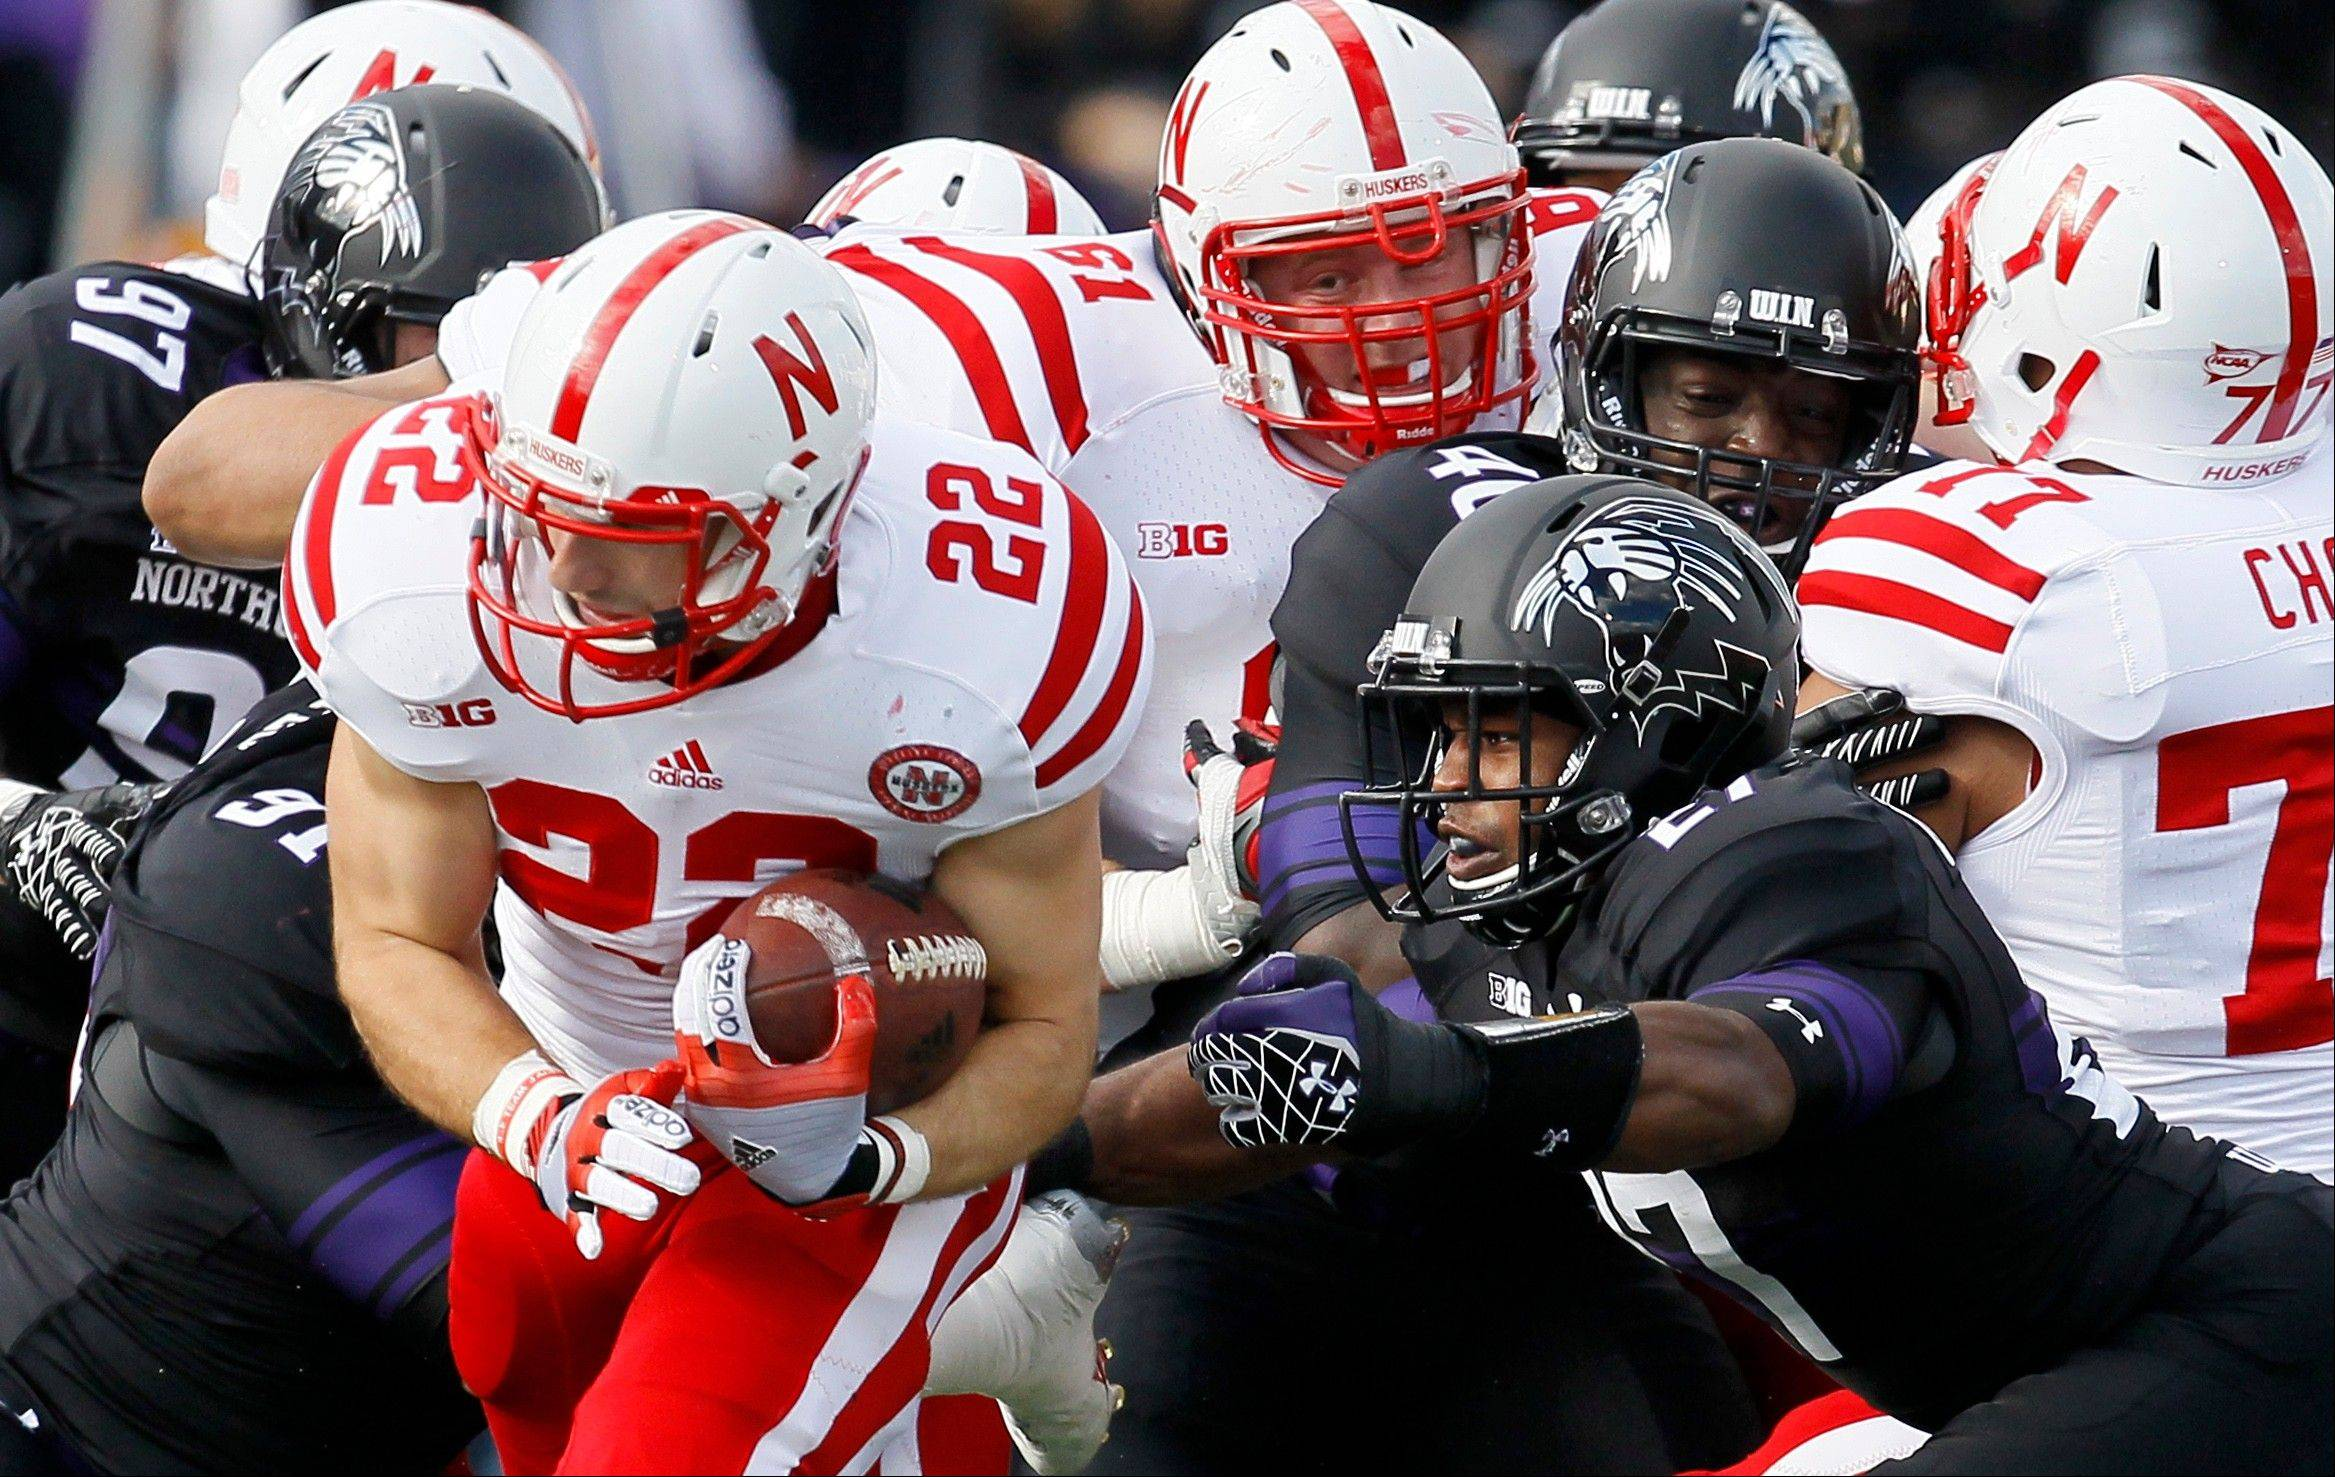 Nebraska running back Rex Burkhead (22) carries the ball past Northwestern safety Jared Carpenter (27) during the first half of an NCAA college football game on Saturday, Oct. 20, 2012, in Evanston.